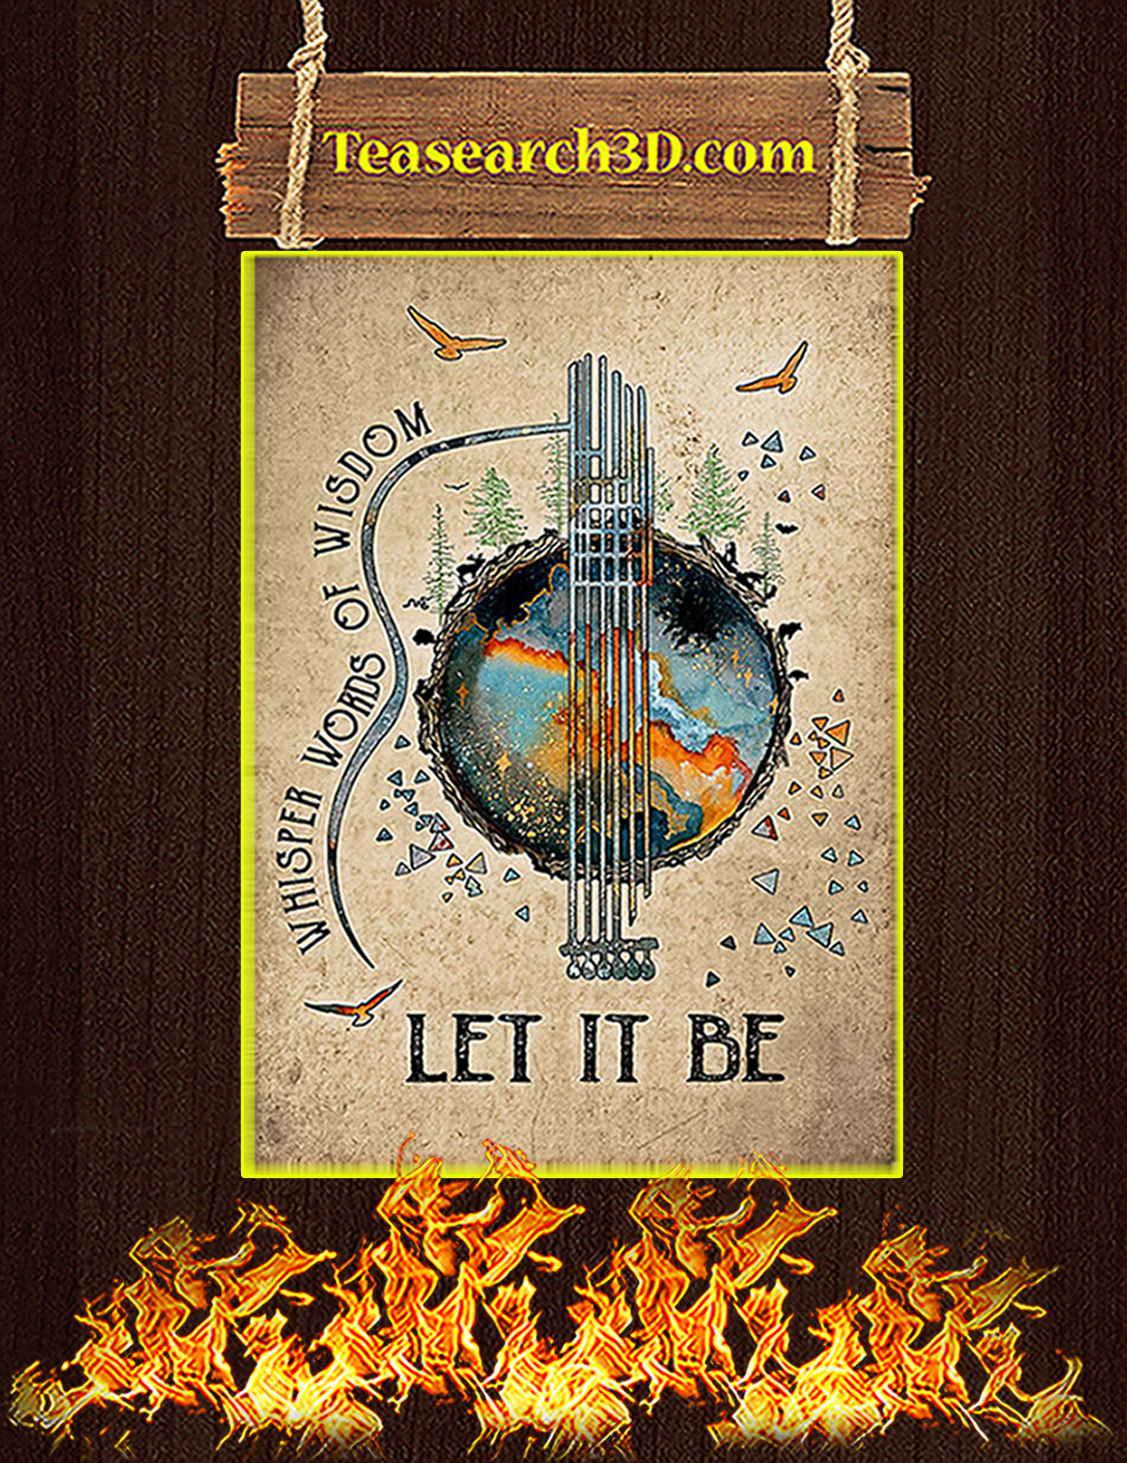 Whisper words of wisdom let it be earth poster A3